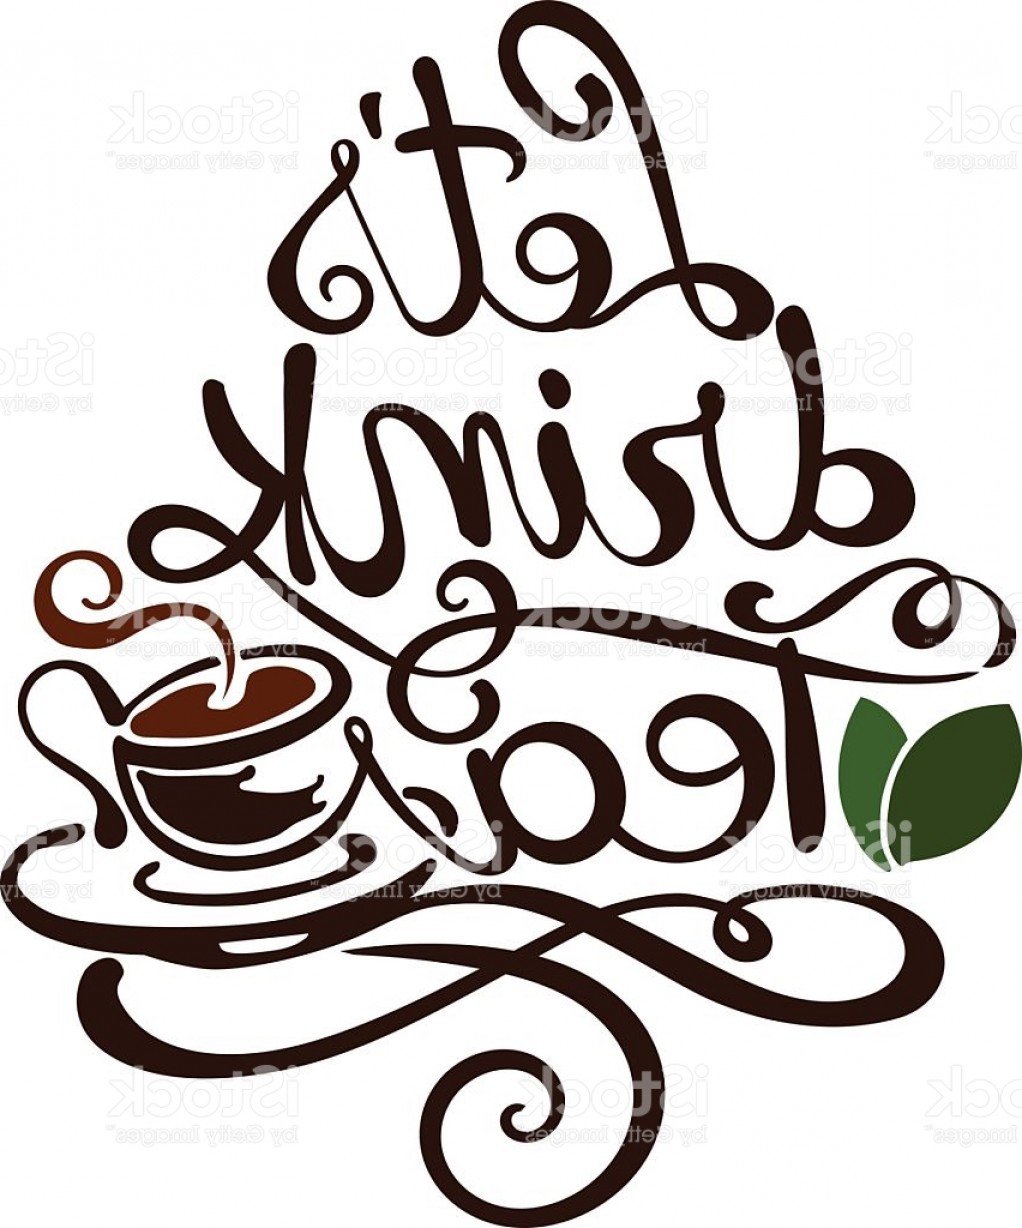 Teas Drinks Vector: Lettering Lets Drink Tea Gm